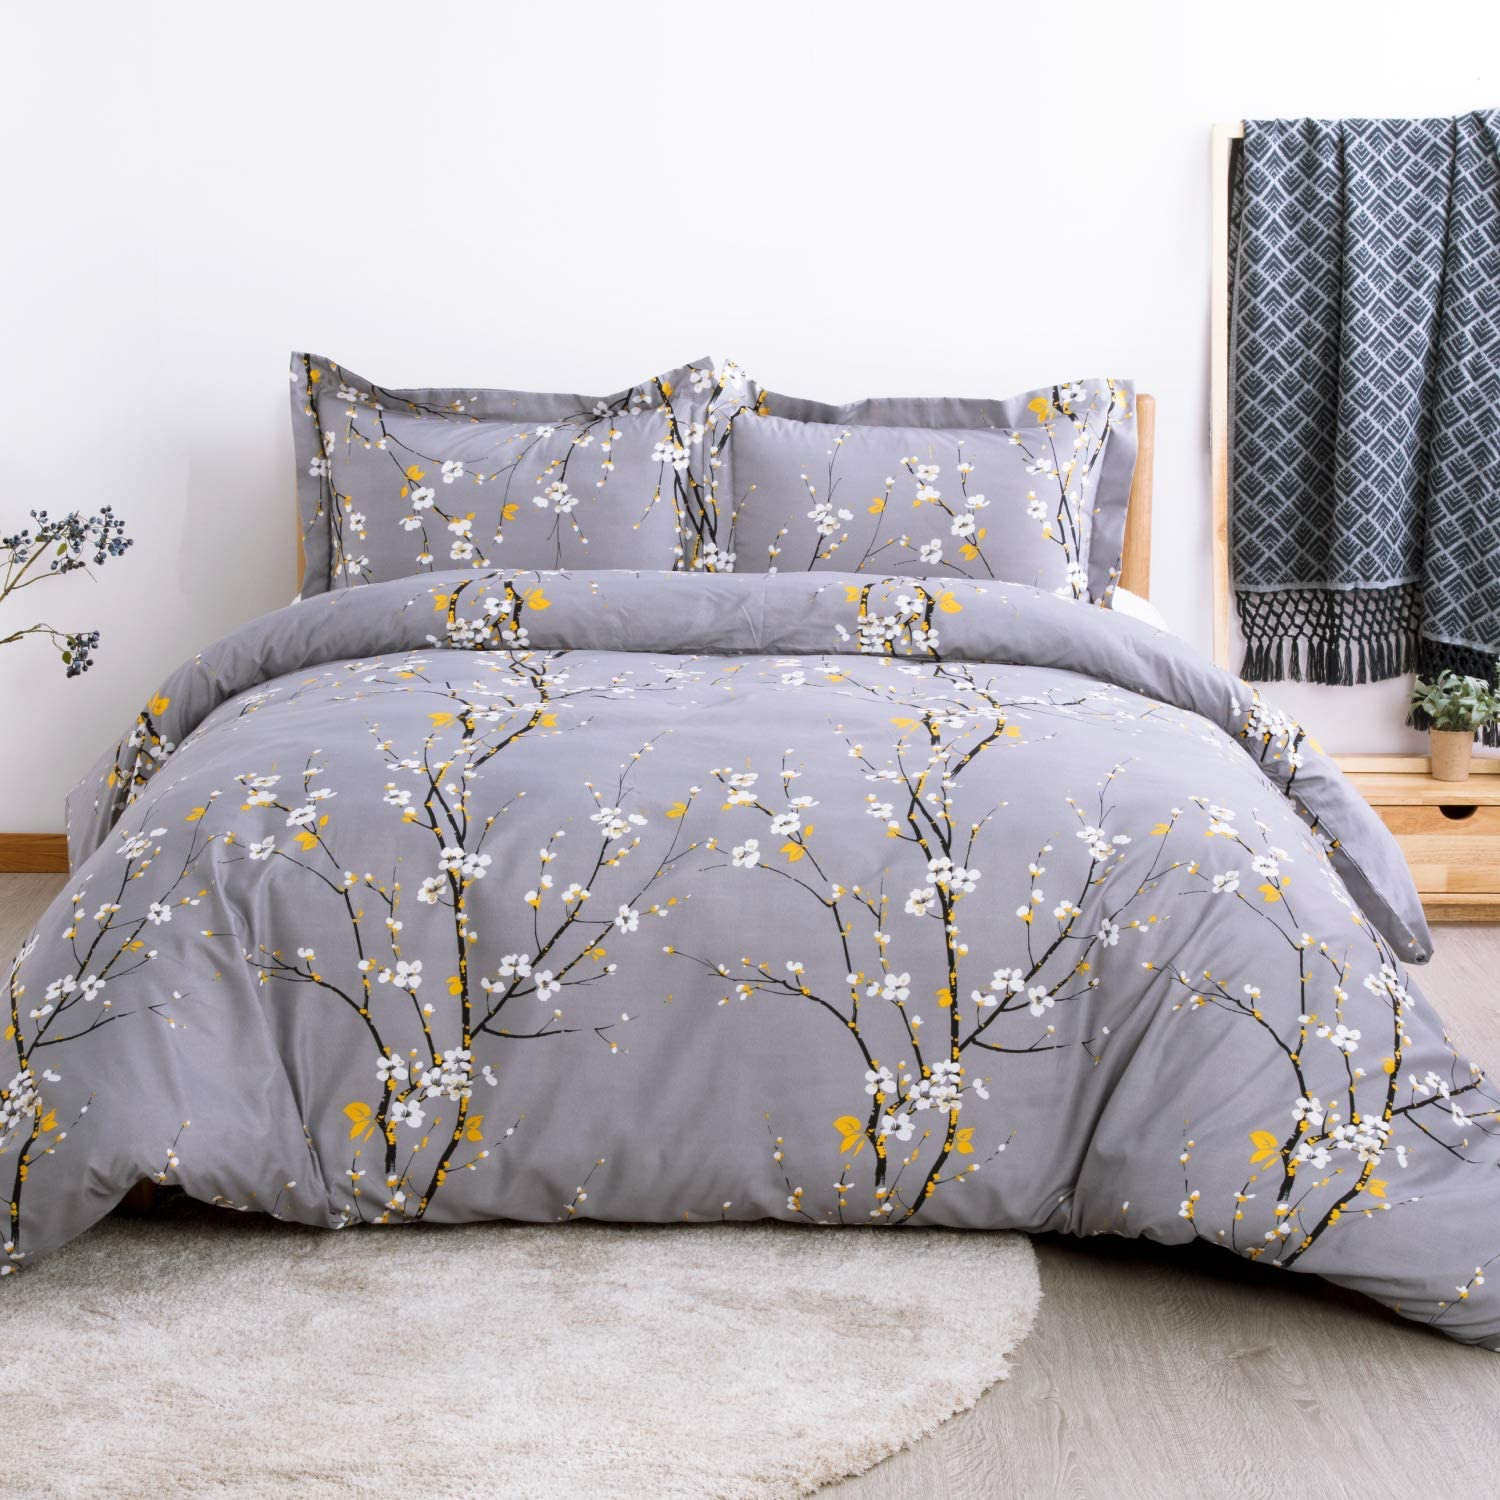 Bedsure Duvet Cover Set King Dark Grey Plum Blossom Pattern Comforter Cover 3 Pieces(104x90 inches) Soft Microfiber